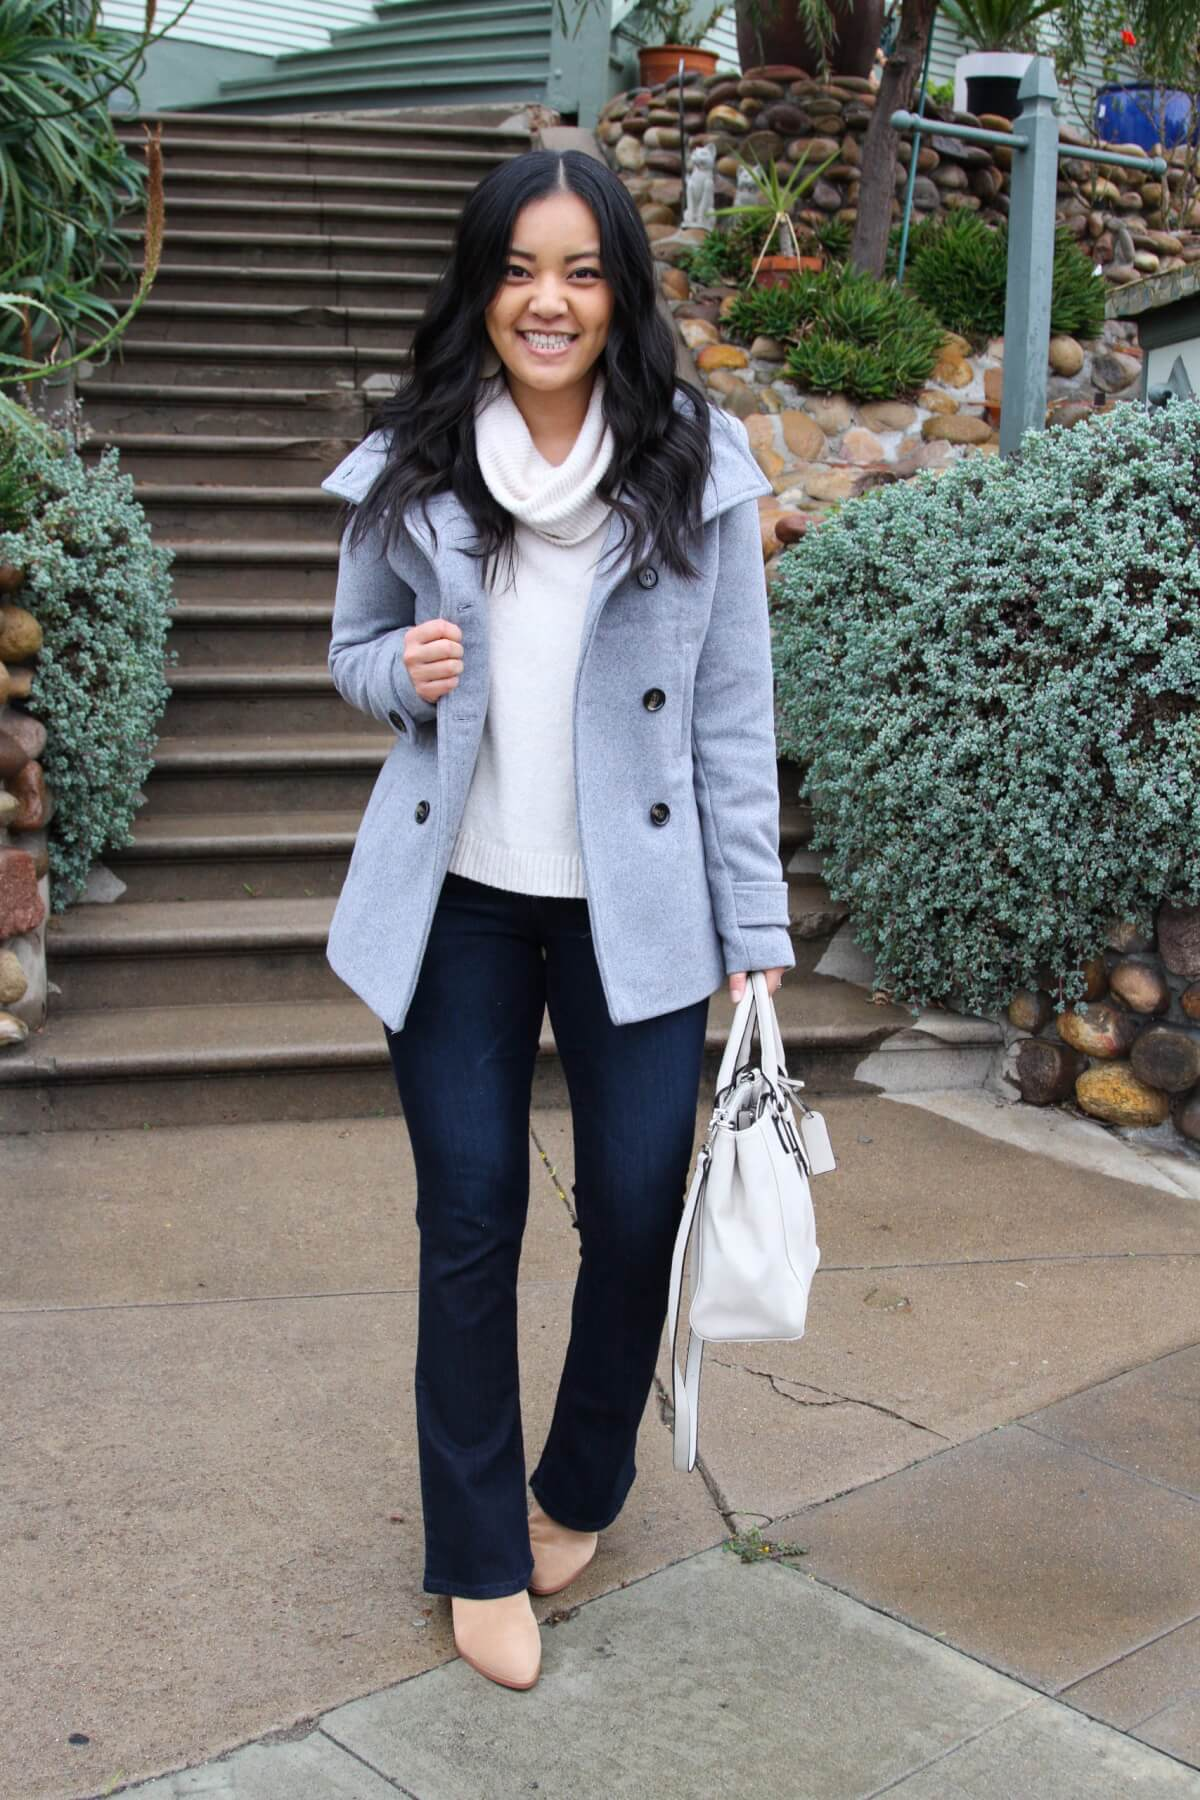 winter outfit: white turtleneck sweater + gray peacoat + bootcut jeans + neutral boots + white handbag